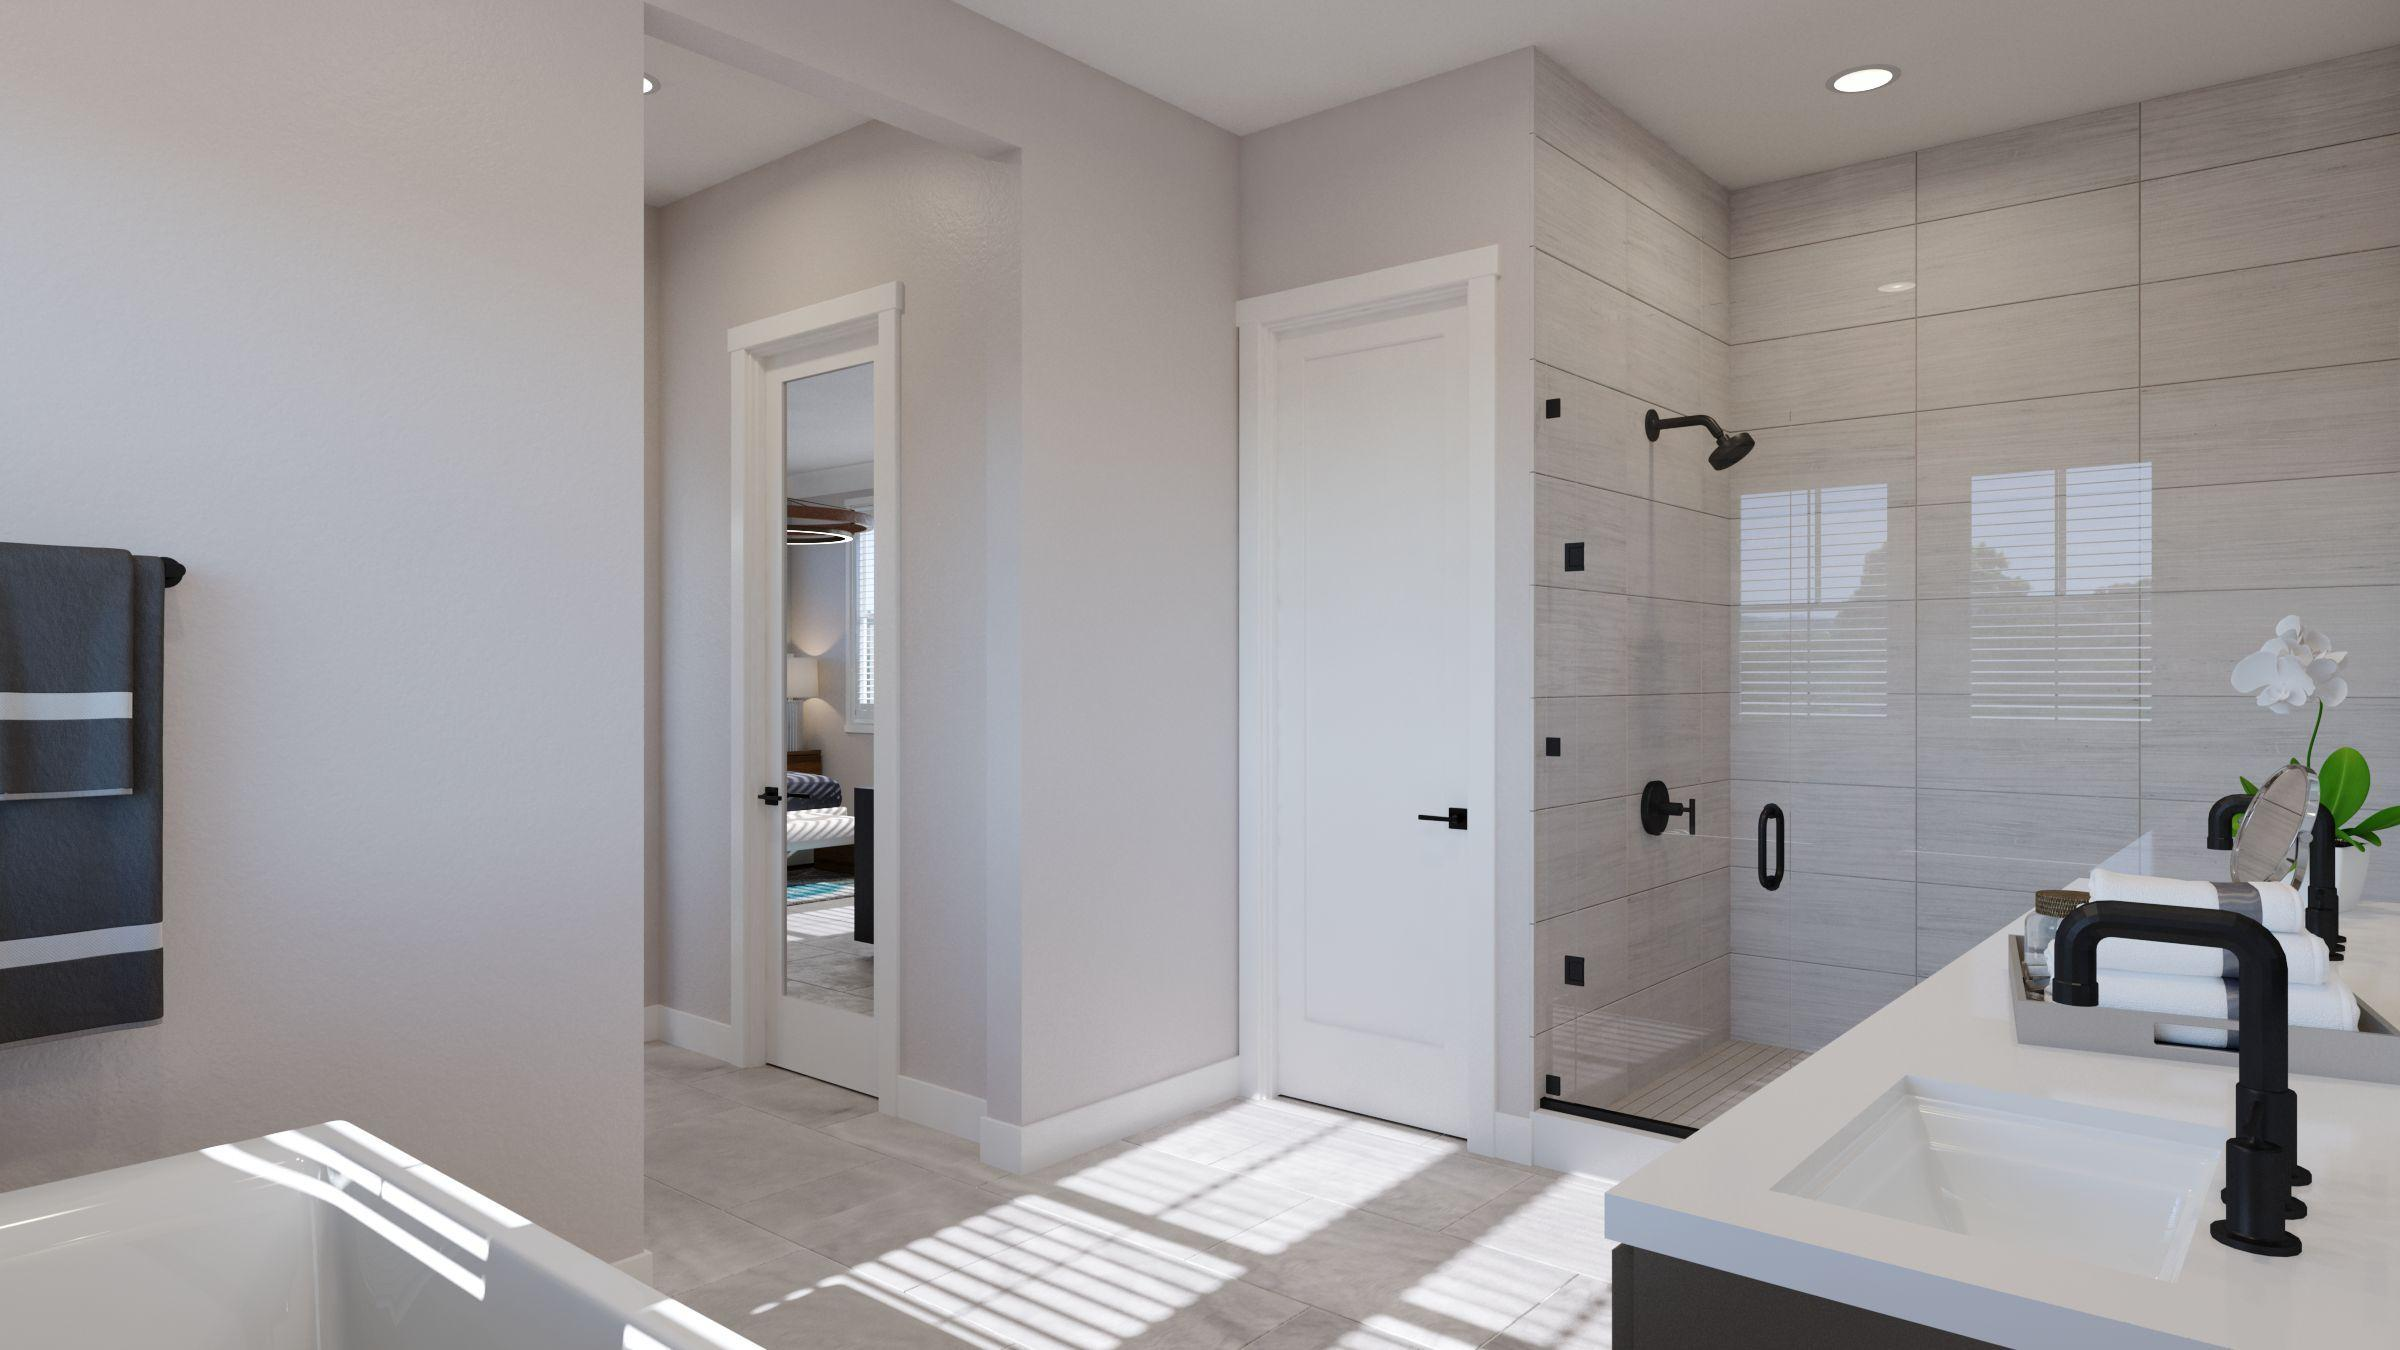 Bathroom featured in the Residence 1 -Harmony By Trumark Homes in San Jose, CA